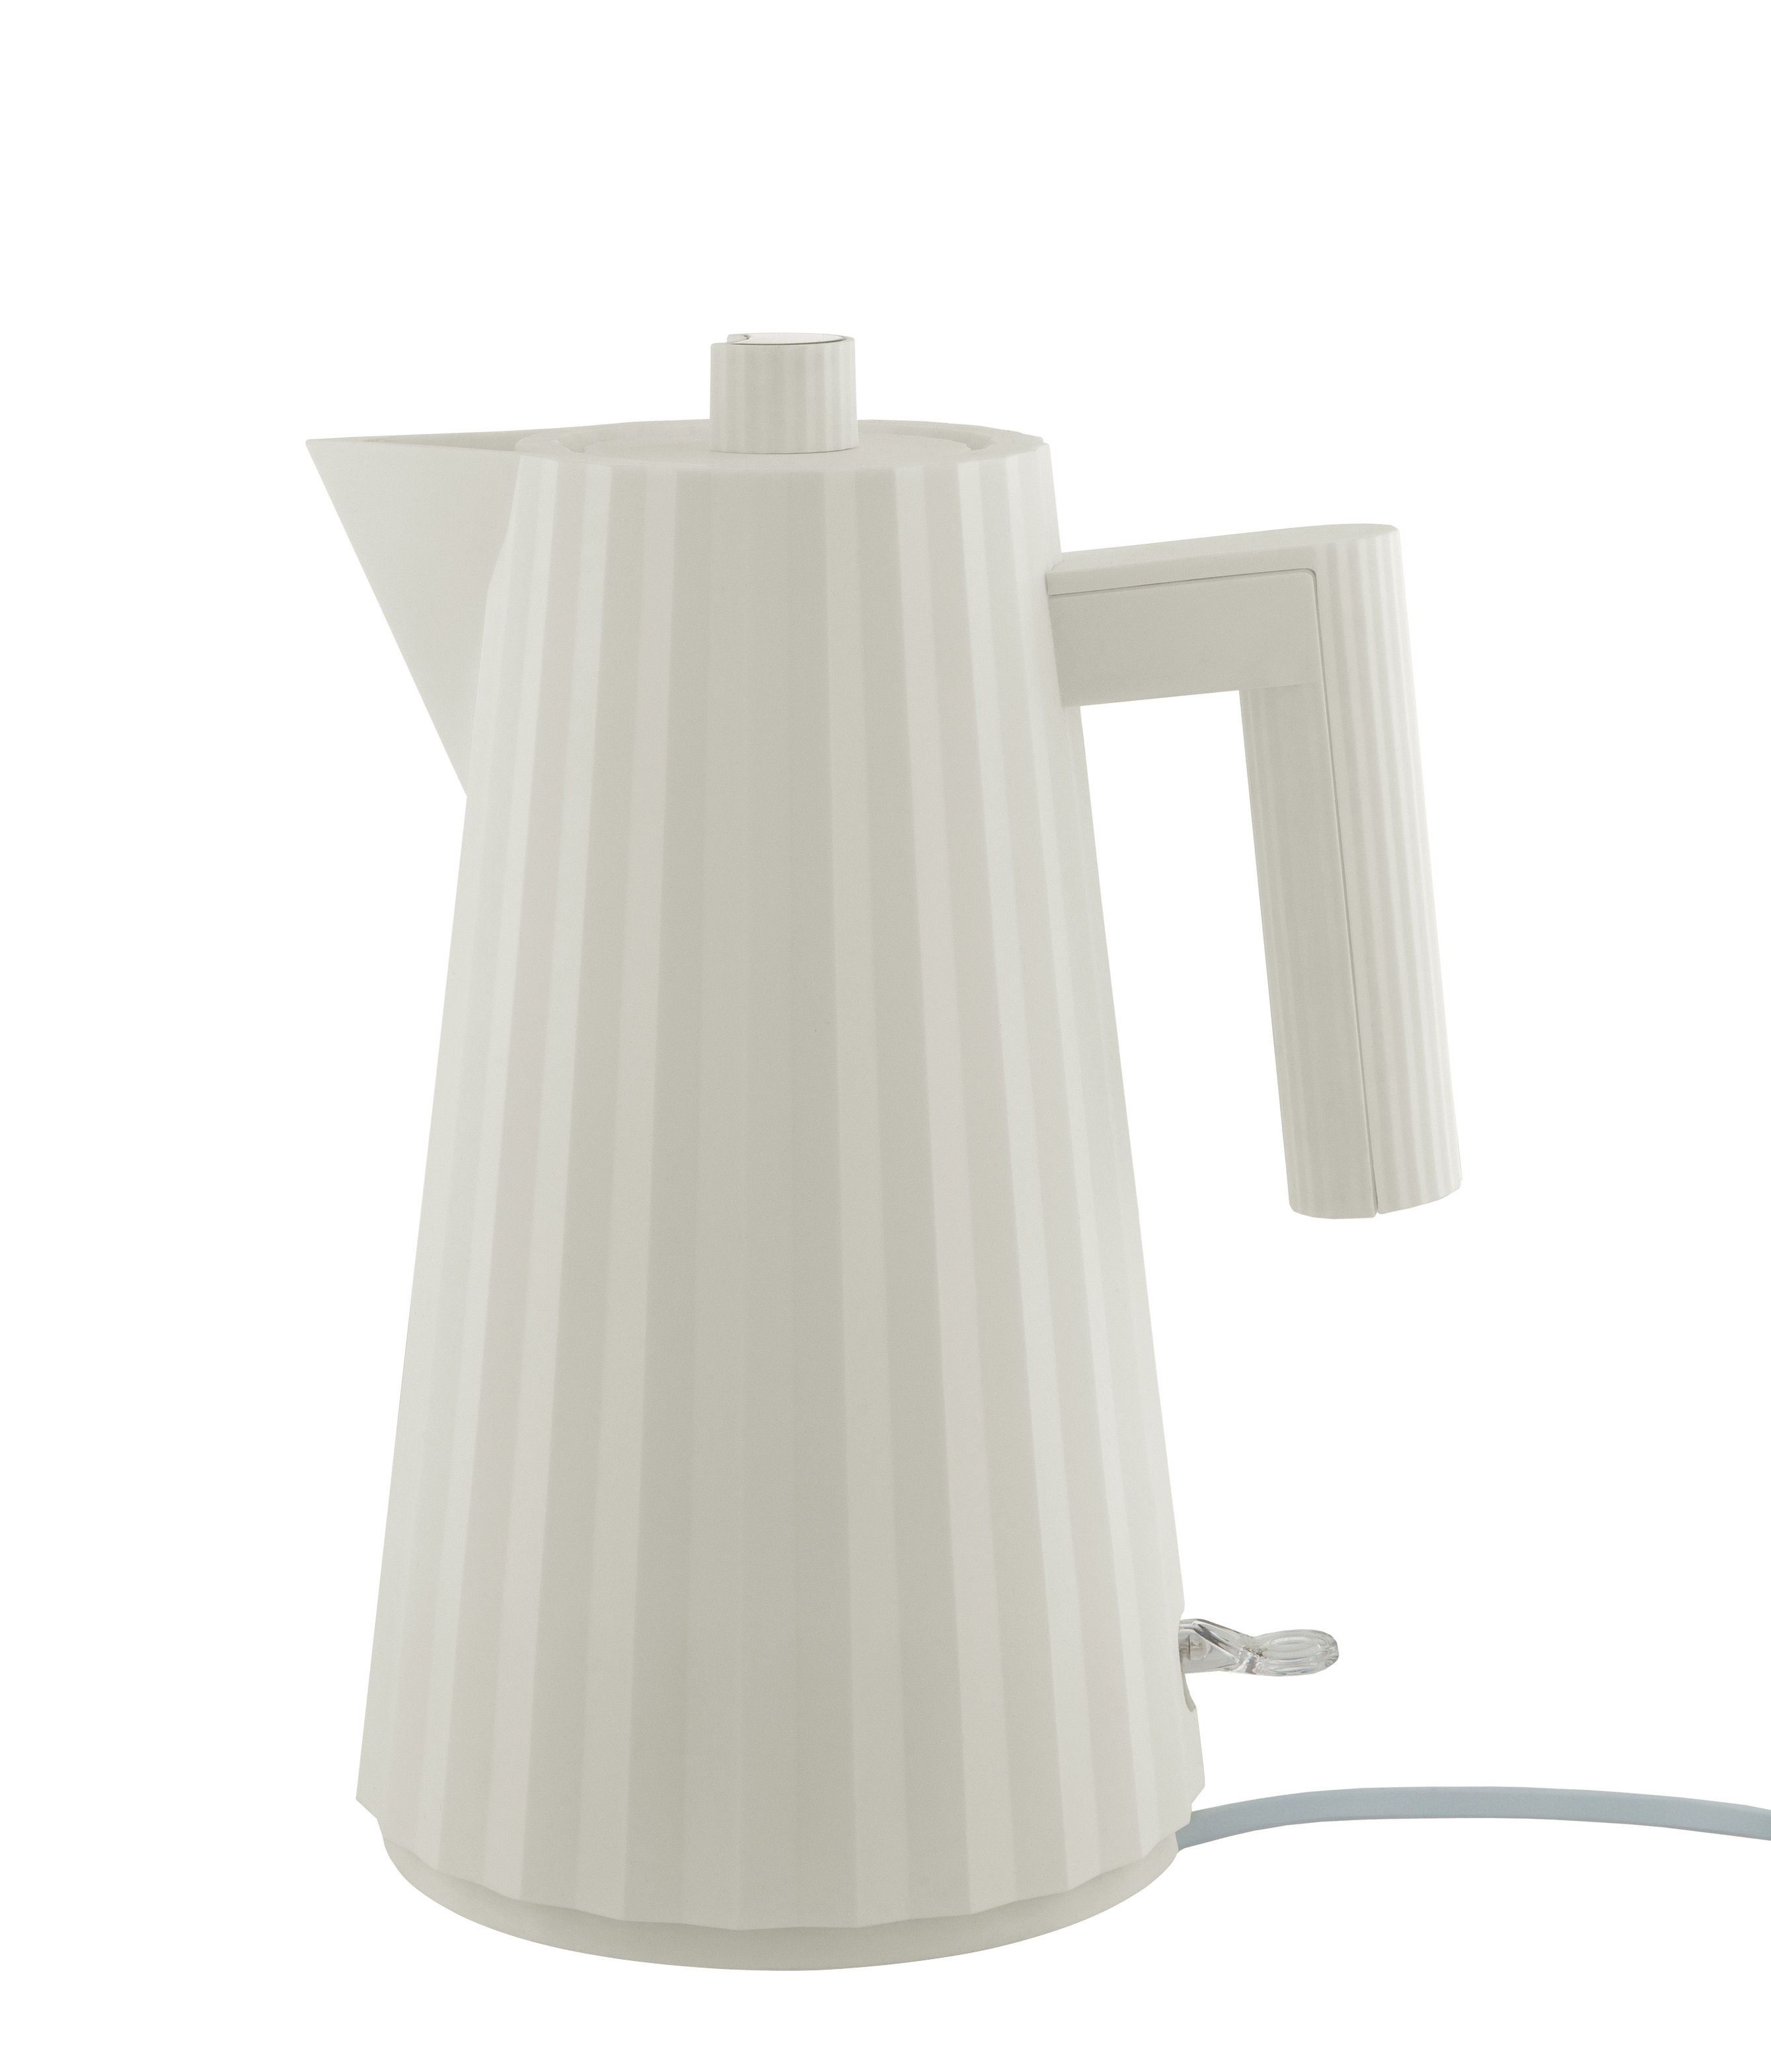 Kitchenware - Kettles & Teapots - Plissé Electric kettle - / 1.7 L by Alessi - White - Thermoplastic resin